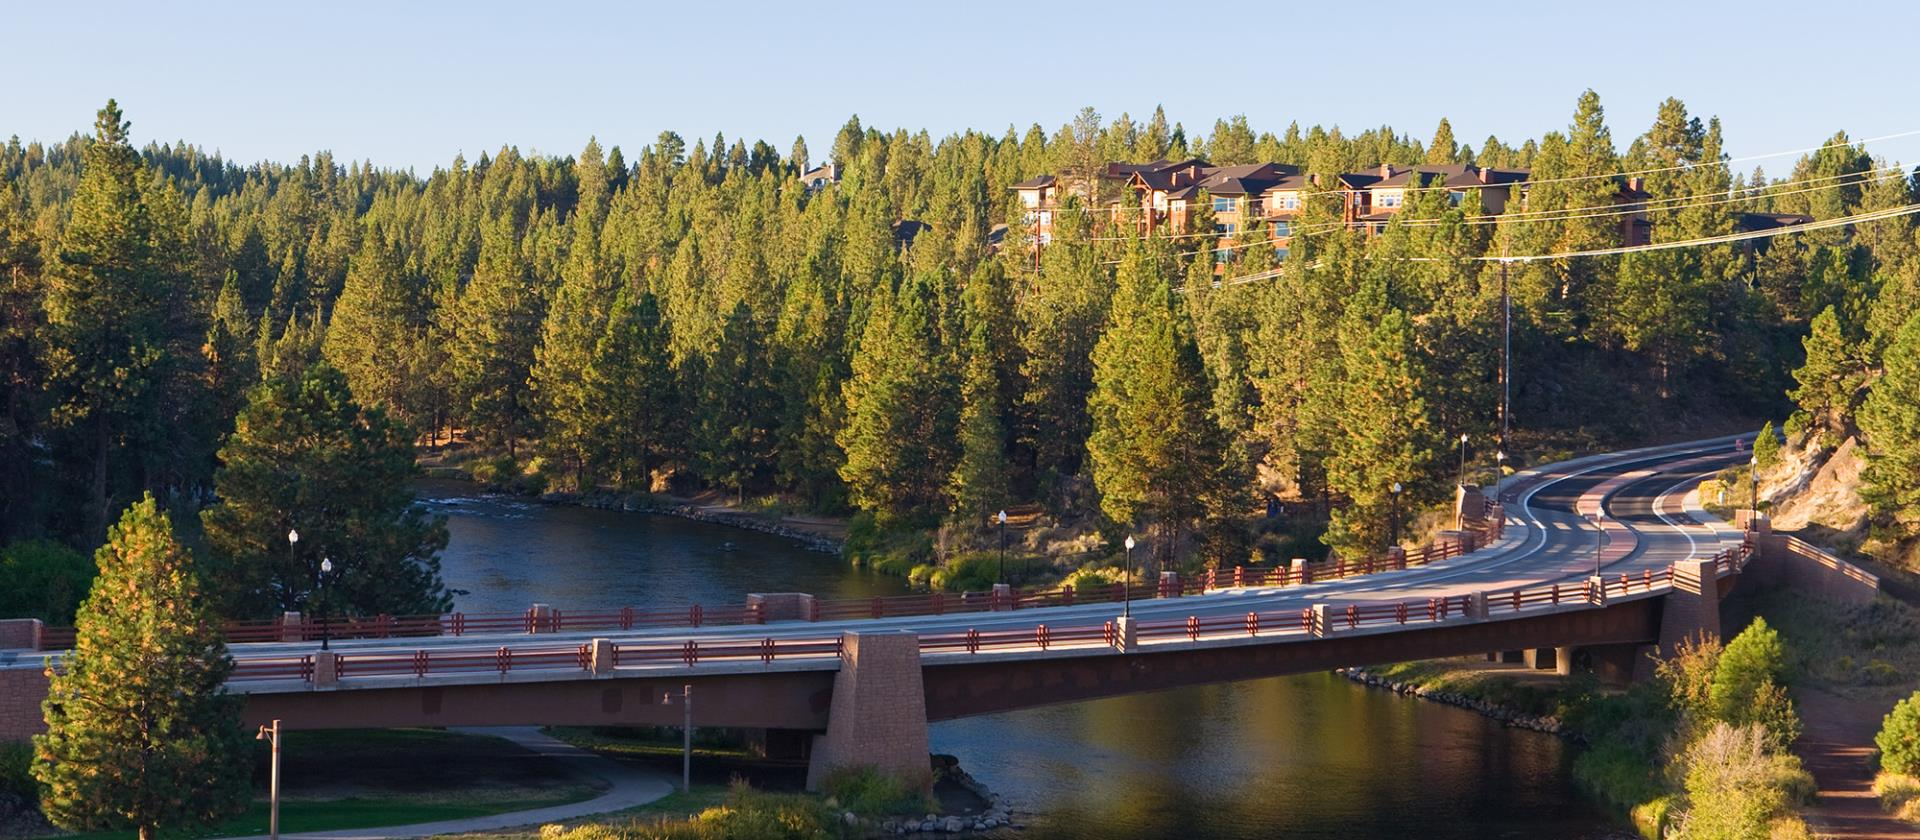 Reed Market Bridge in Bend Oregon crossing the Deschutes River with ponderosa pine trees in the background.